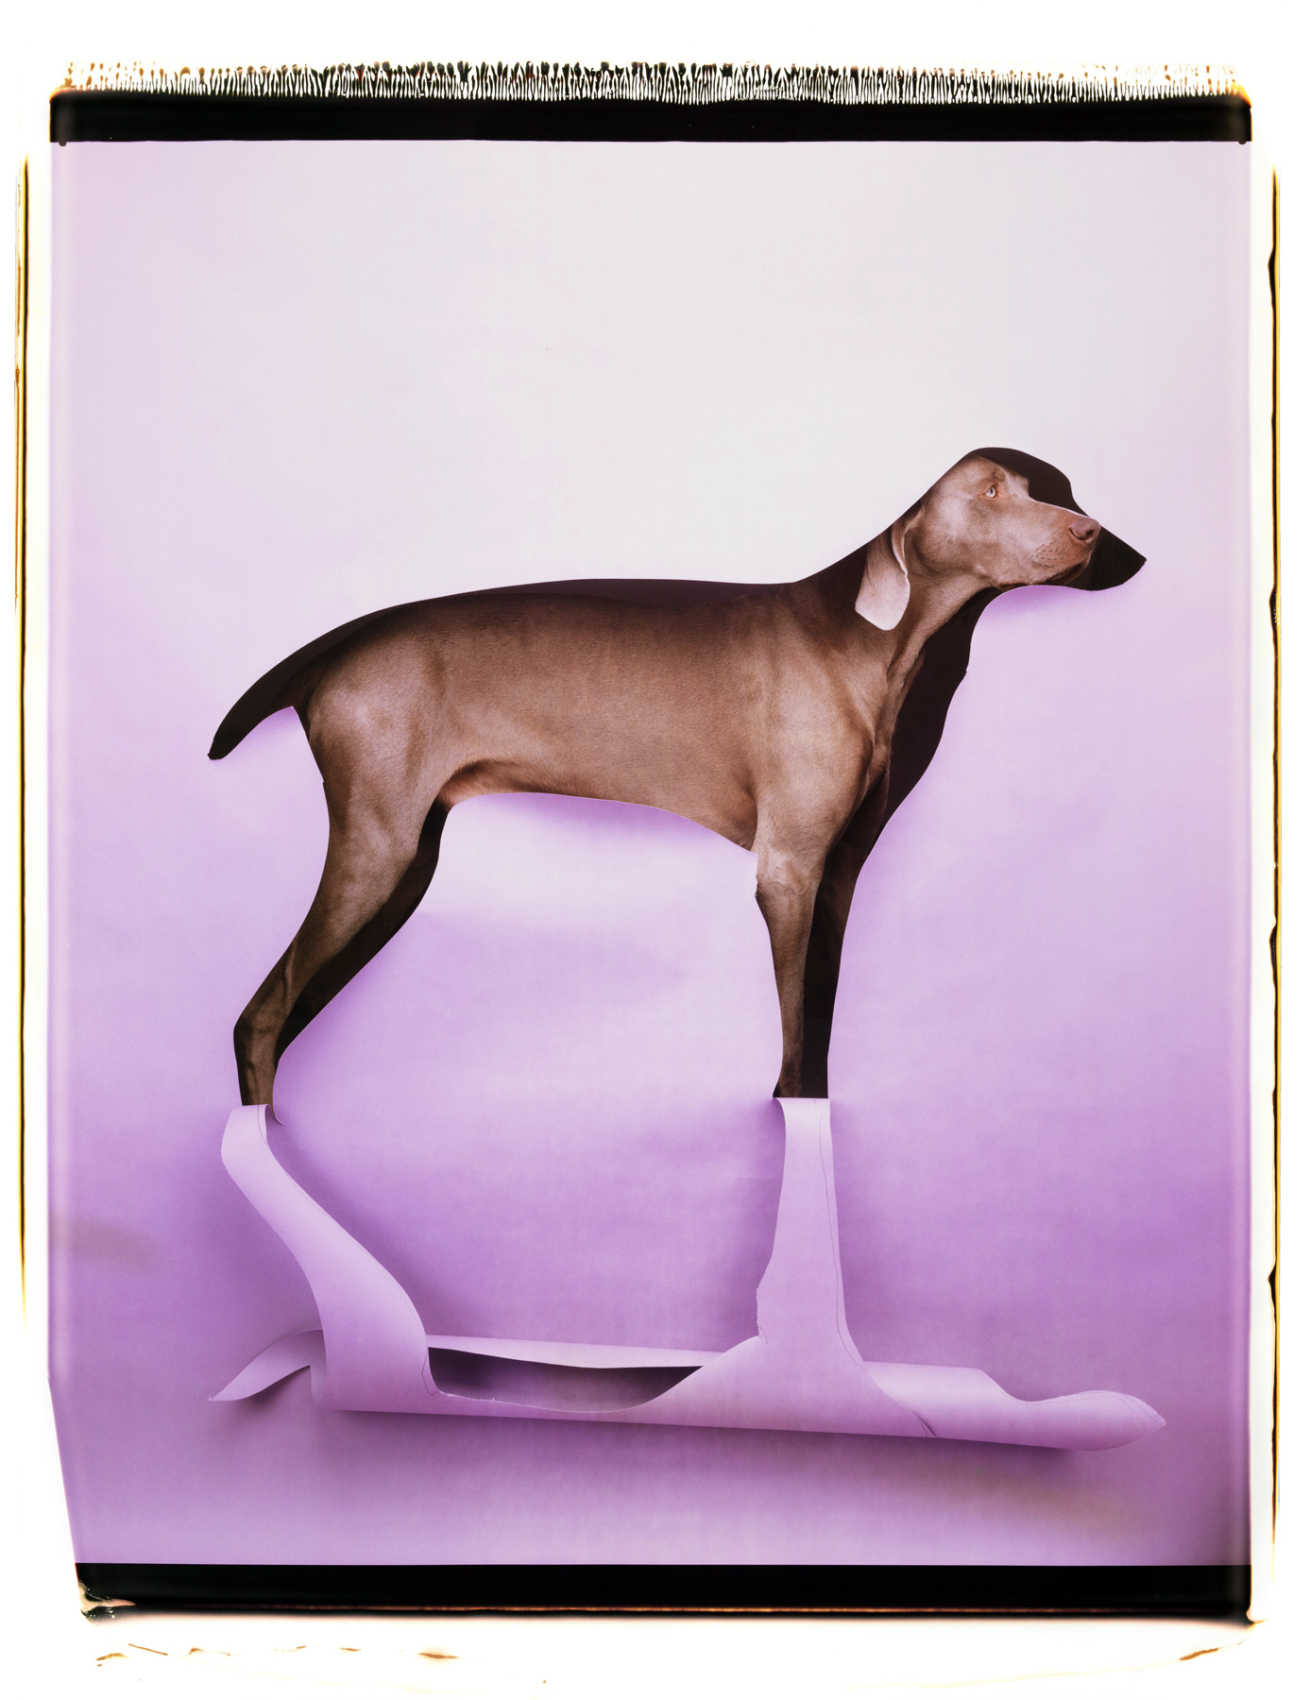 Fotó: William Wegman: Cut to Reveal, 1997 © William Wegman